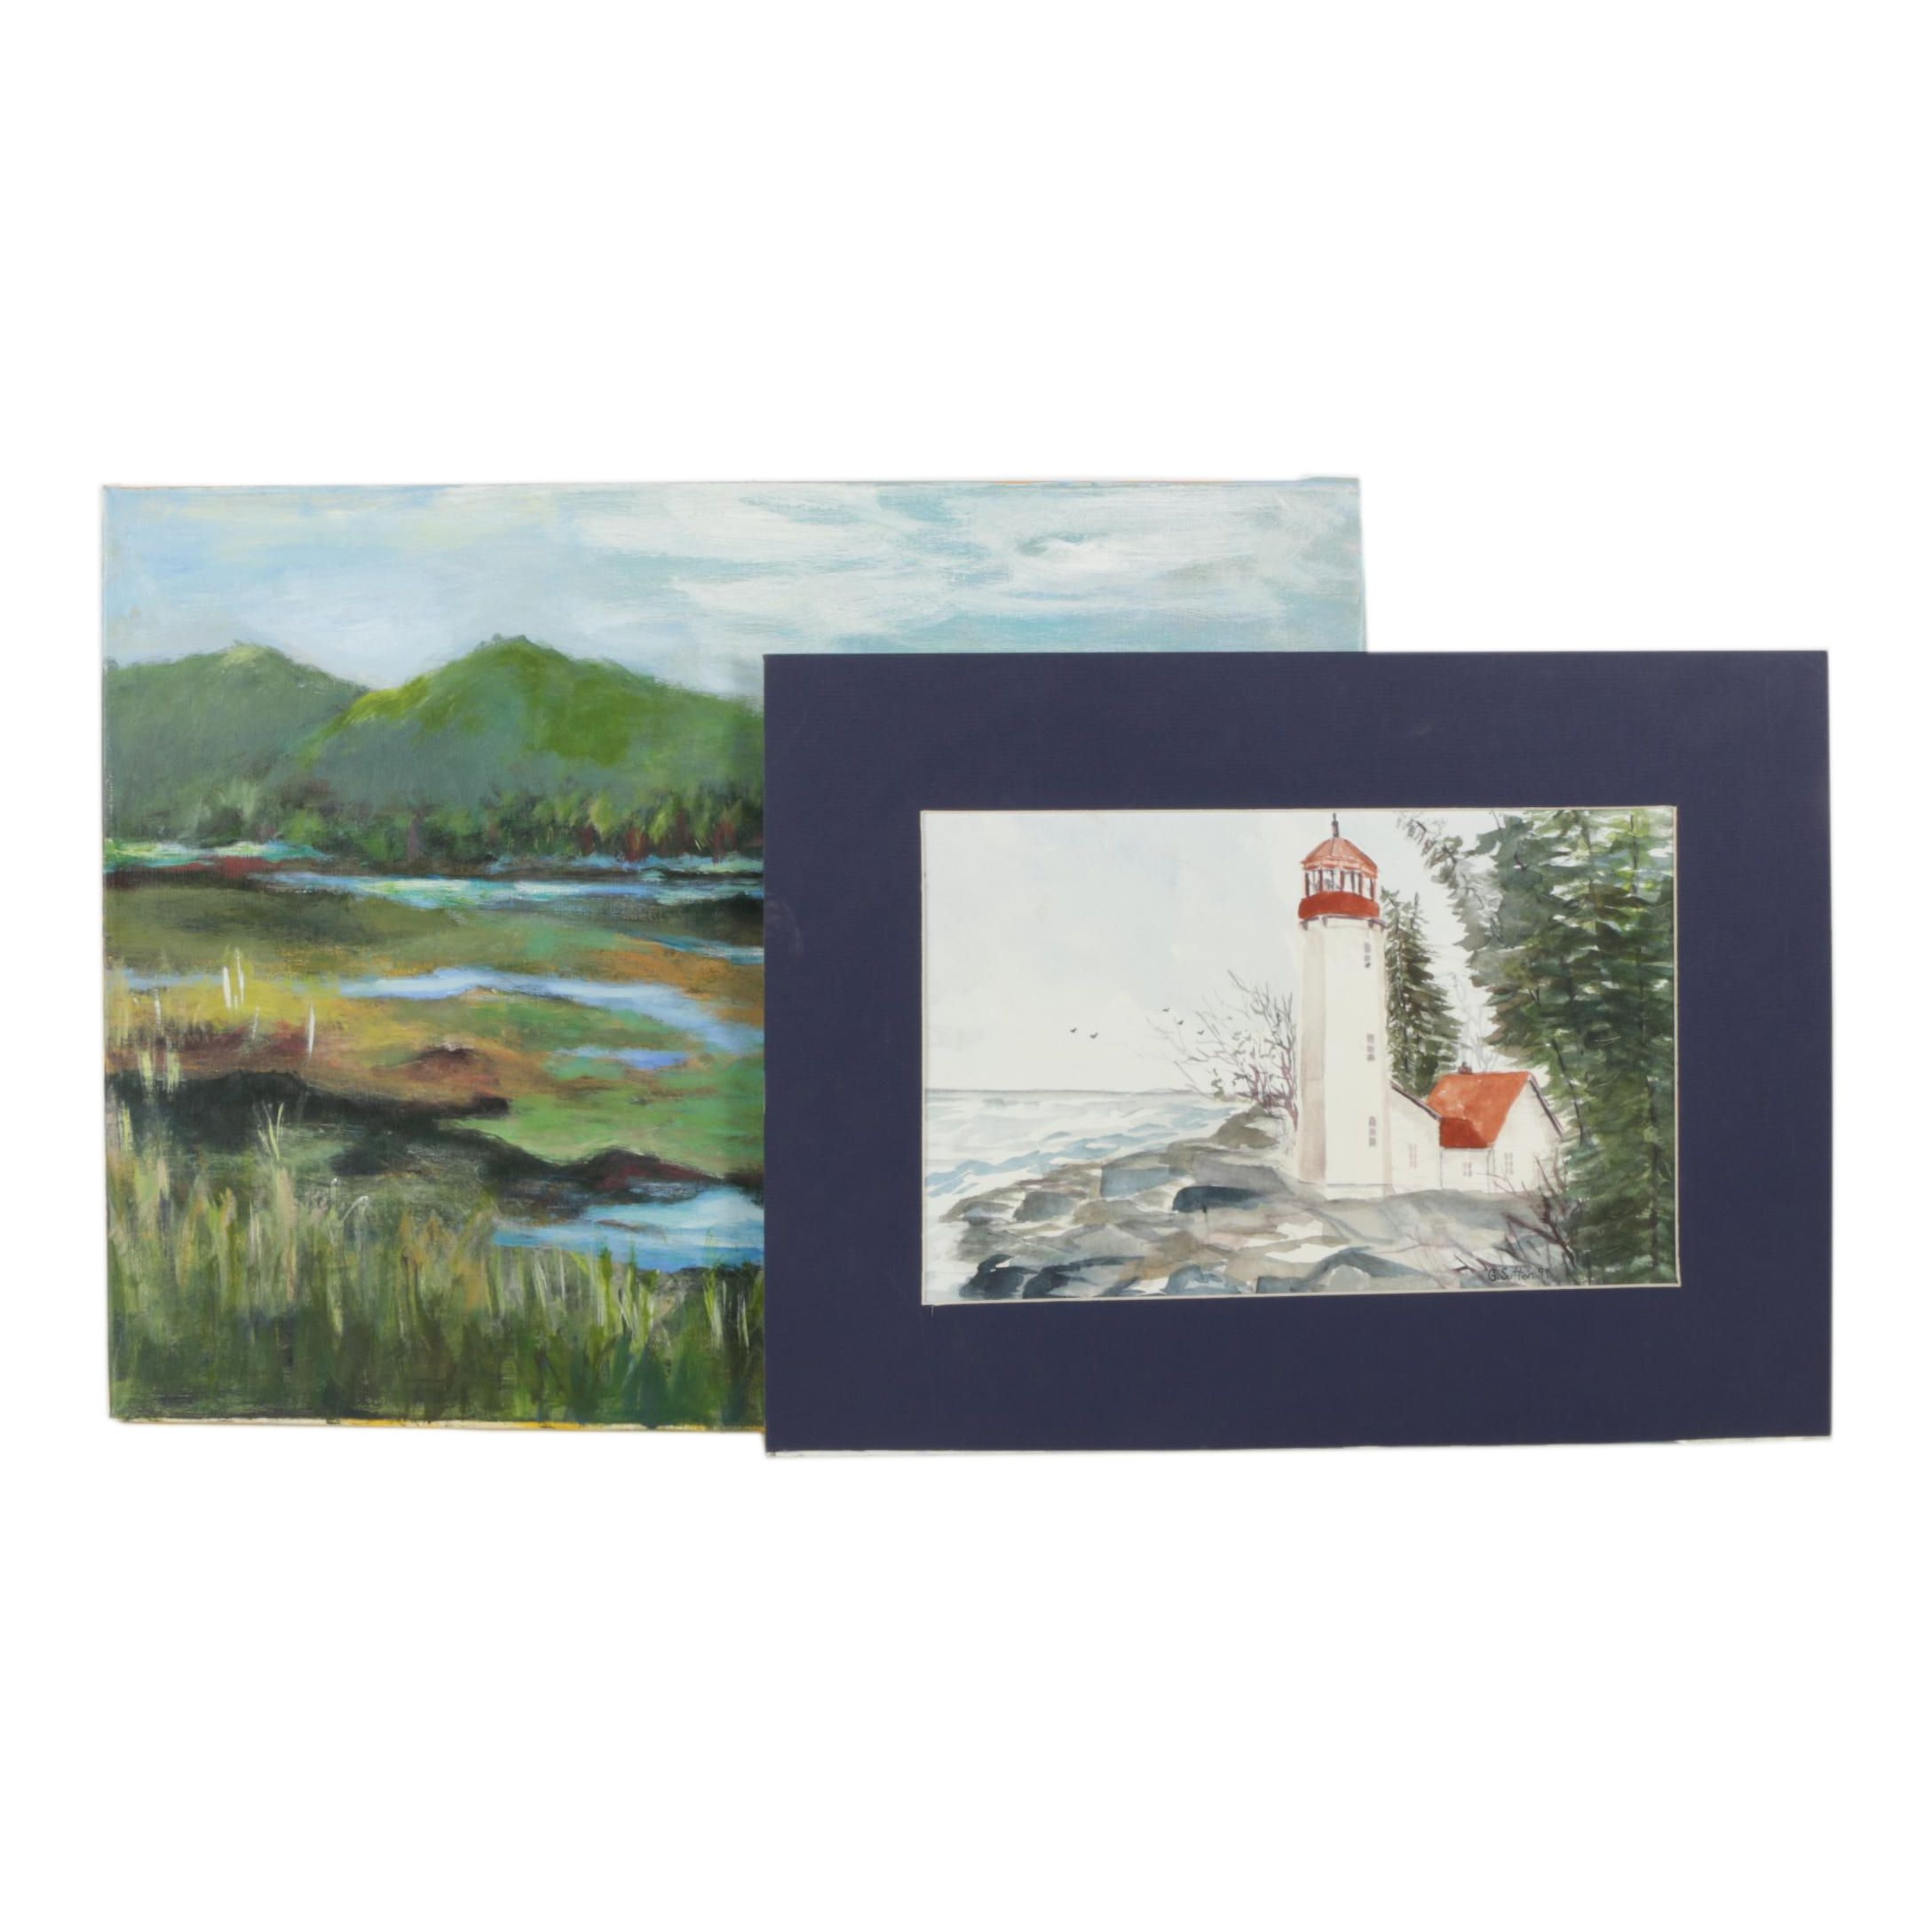 Late 20th-century Oil Painting and G. Sutton Watercolor Painting